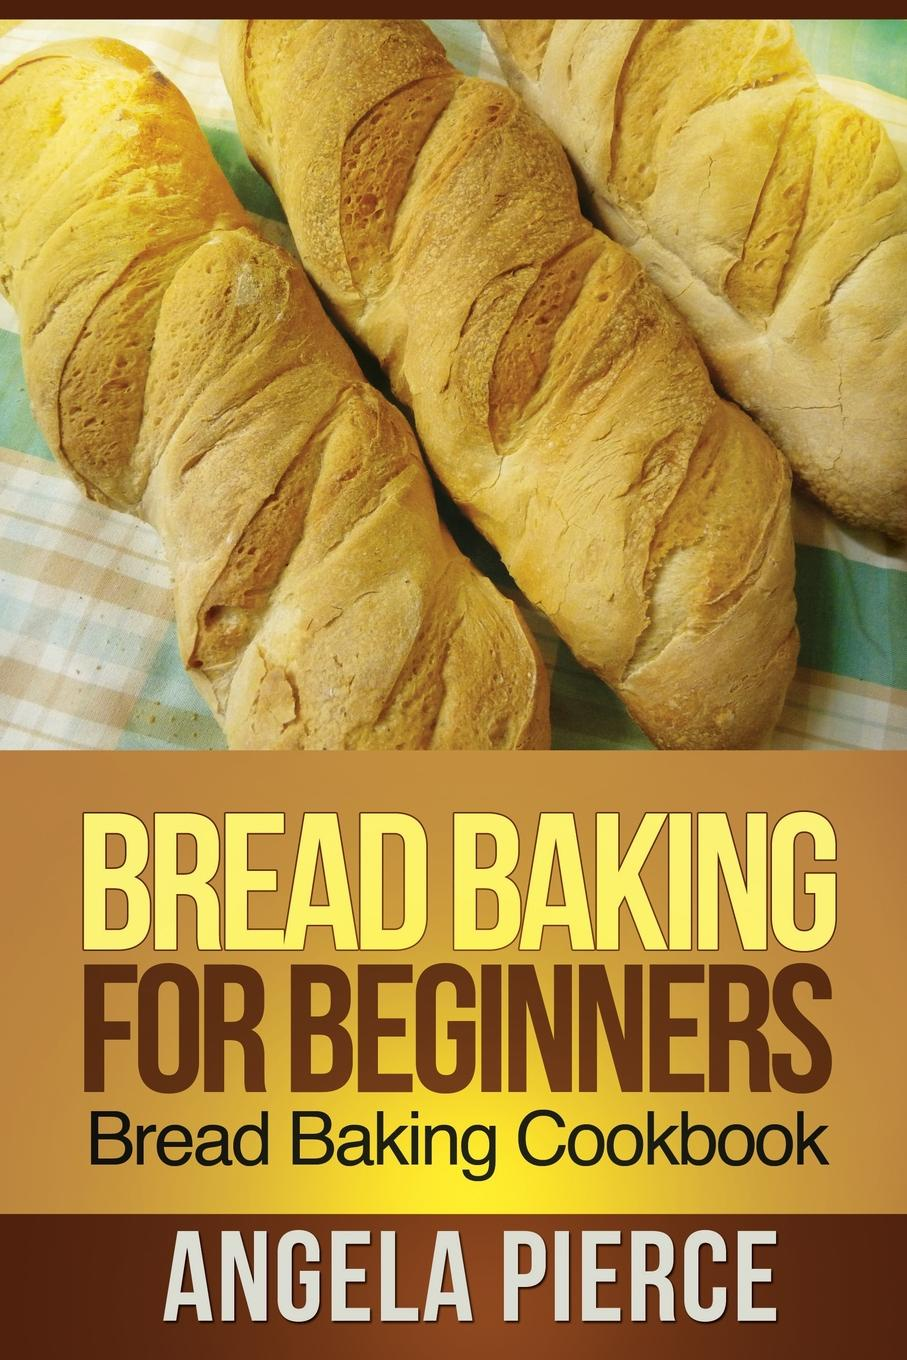 Pierce Angela Bread Baking for Beginners. Bread Baking Cookbook book of bread recipes to make at home